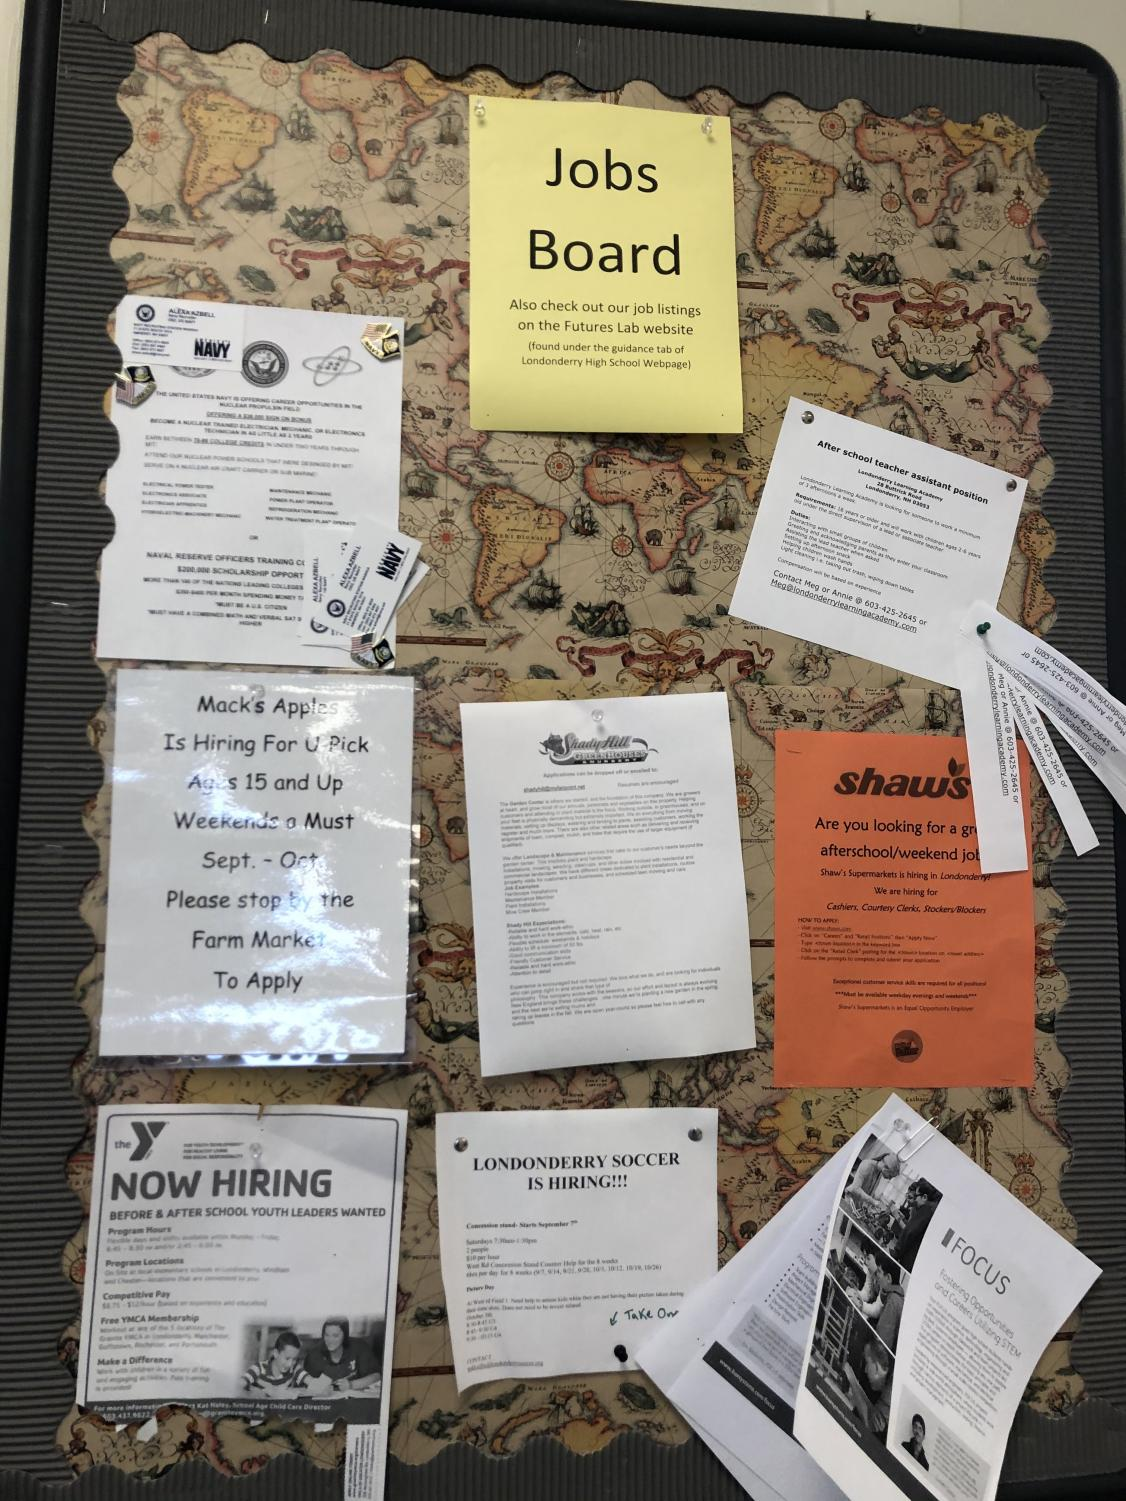 New jobs are constantly being posted to the right of the Futures Lab, so make sure to check for listings on the board as well as on the website!